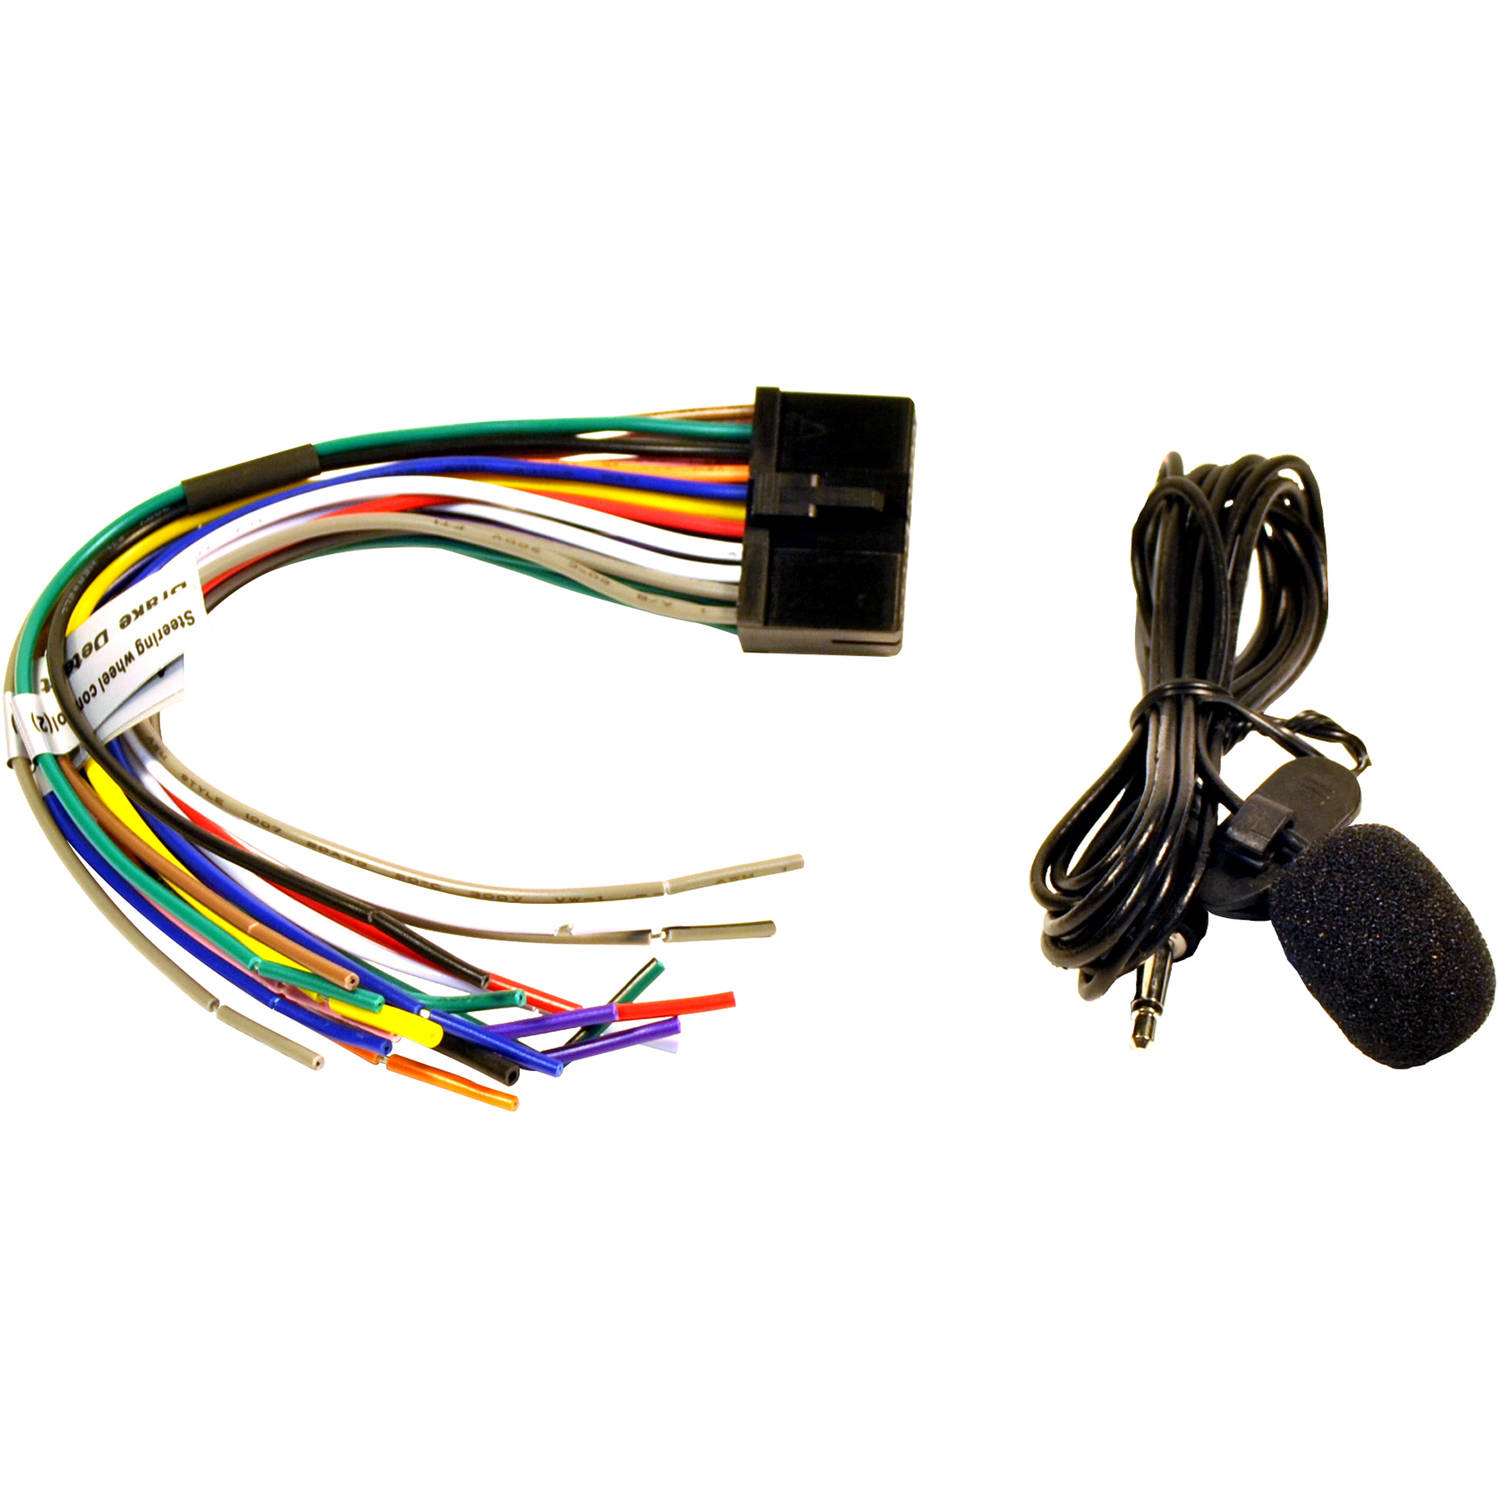 Xo vision xod bt wiring harness diagram